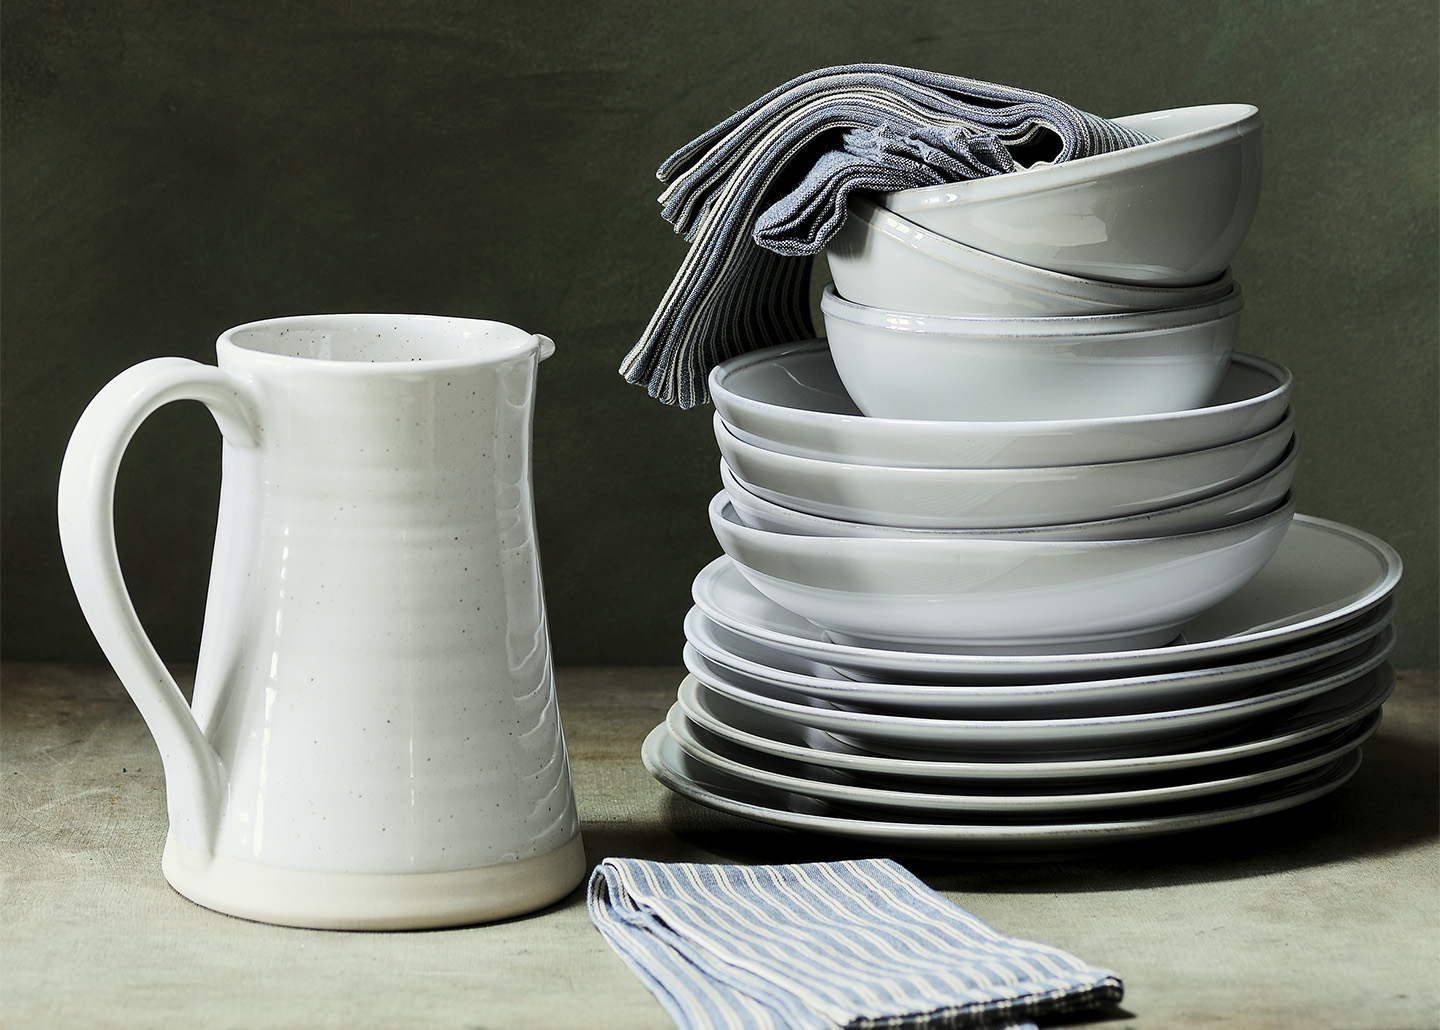 tea towels, dinner plates, dinner sets, plate sets, home accessories, kitchenware, dinnerware